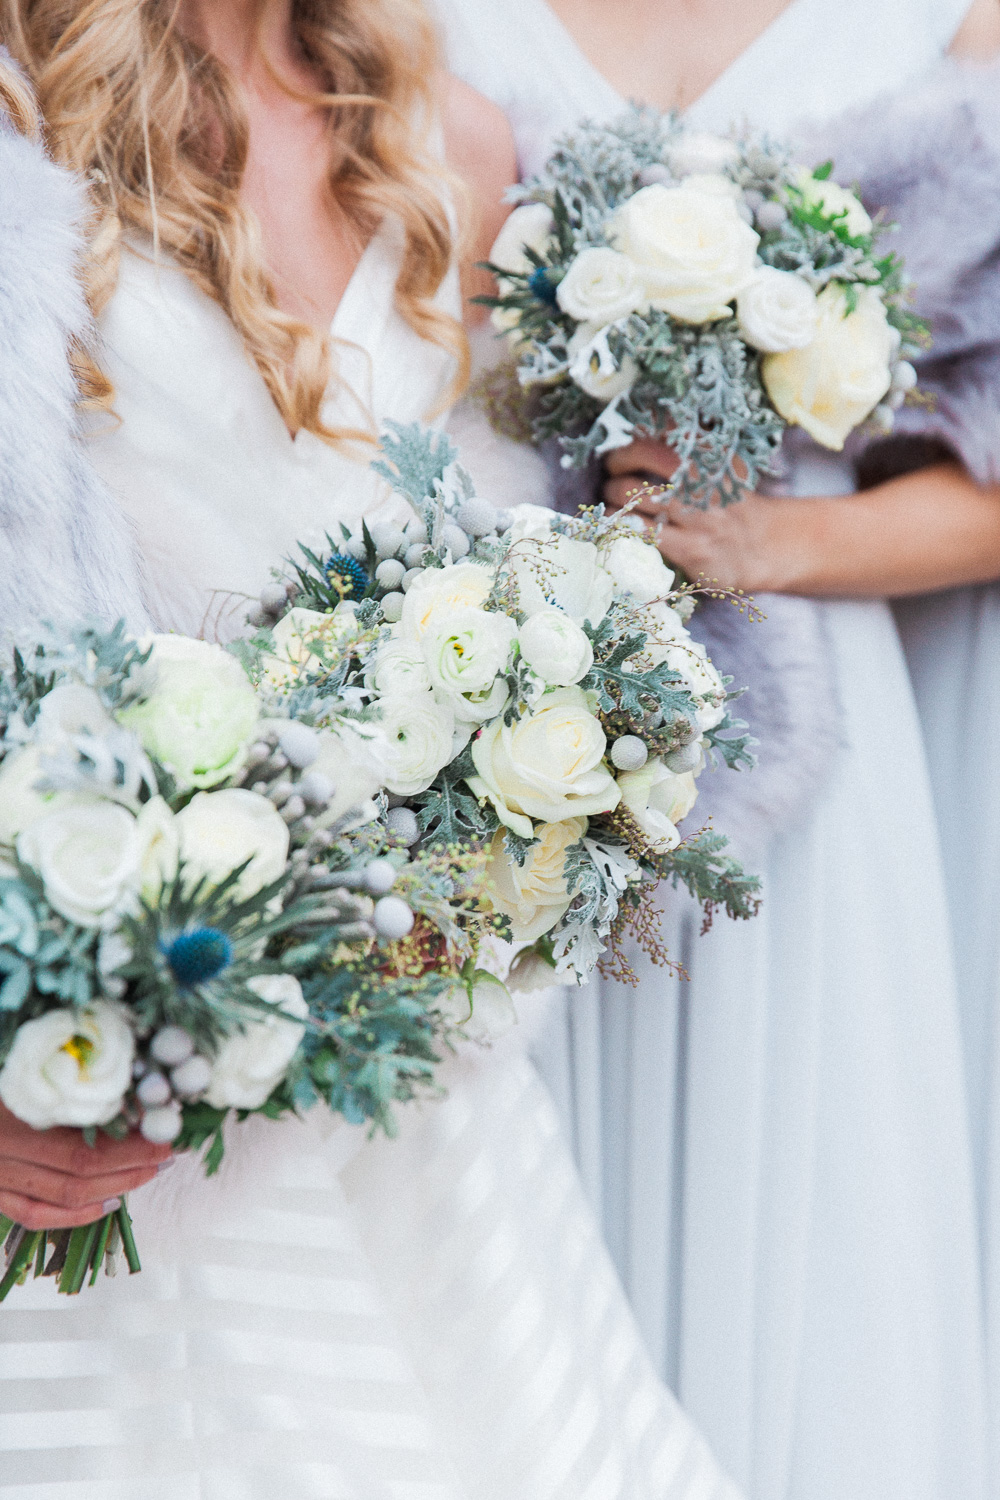 Bride and bridesmaids winter wedding bouquets in white and blue by London wedding photographer Maxeen Kim